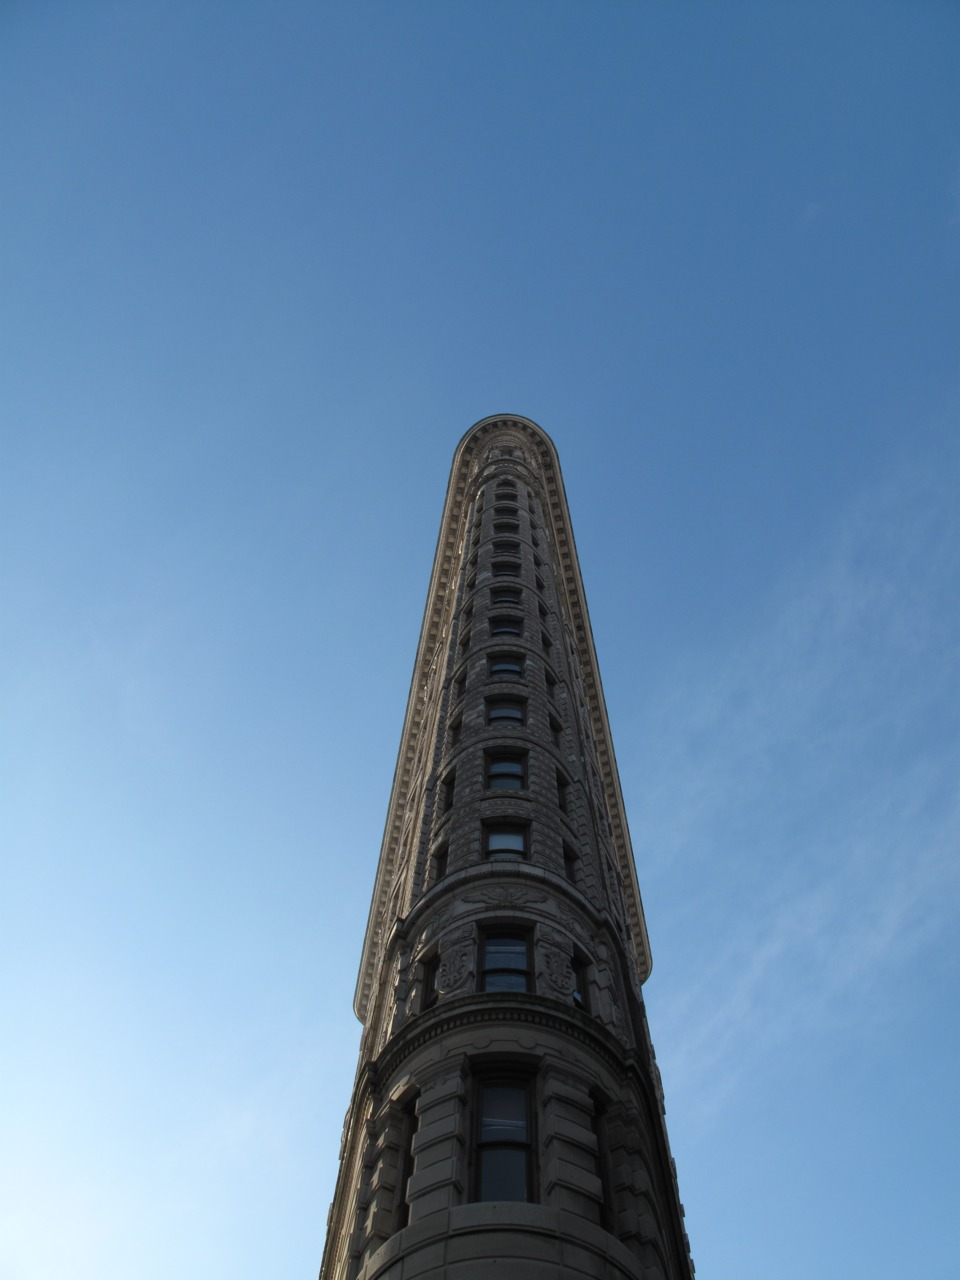 Flatiron Above Every time I visit New York City, seeing the Flatiron building is my #1 priority. I absolutely adore it. Amesmerizingbuilding with a nearby Shake Shack for burgers/shakes, and an Italian-themed Whole Foods called Eataly.